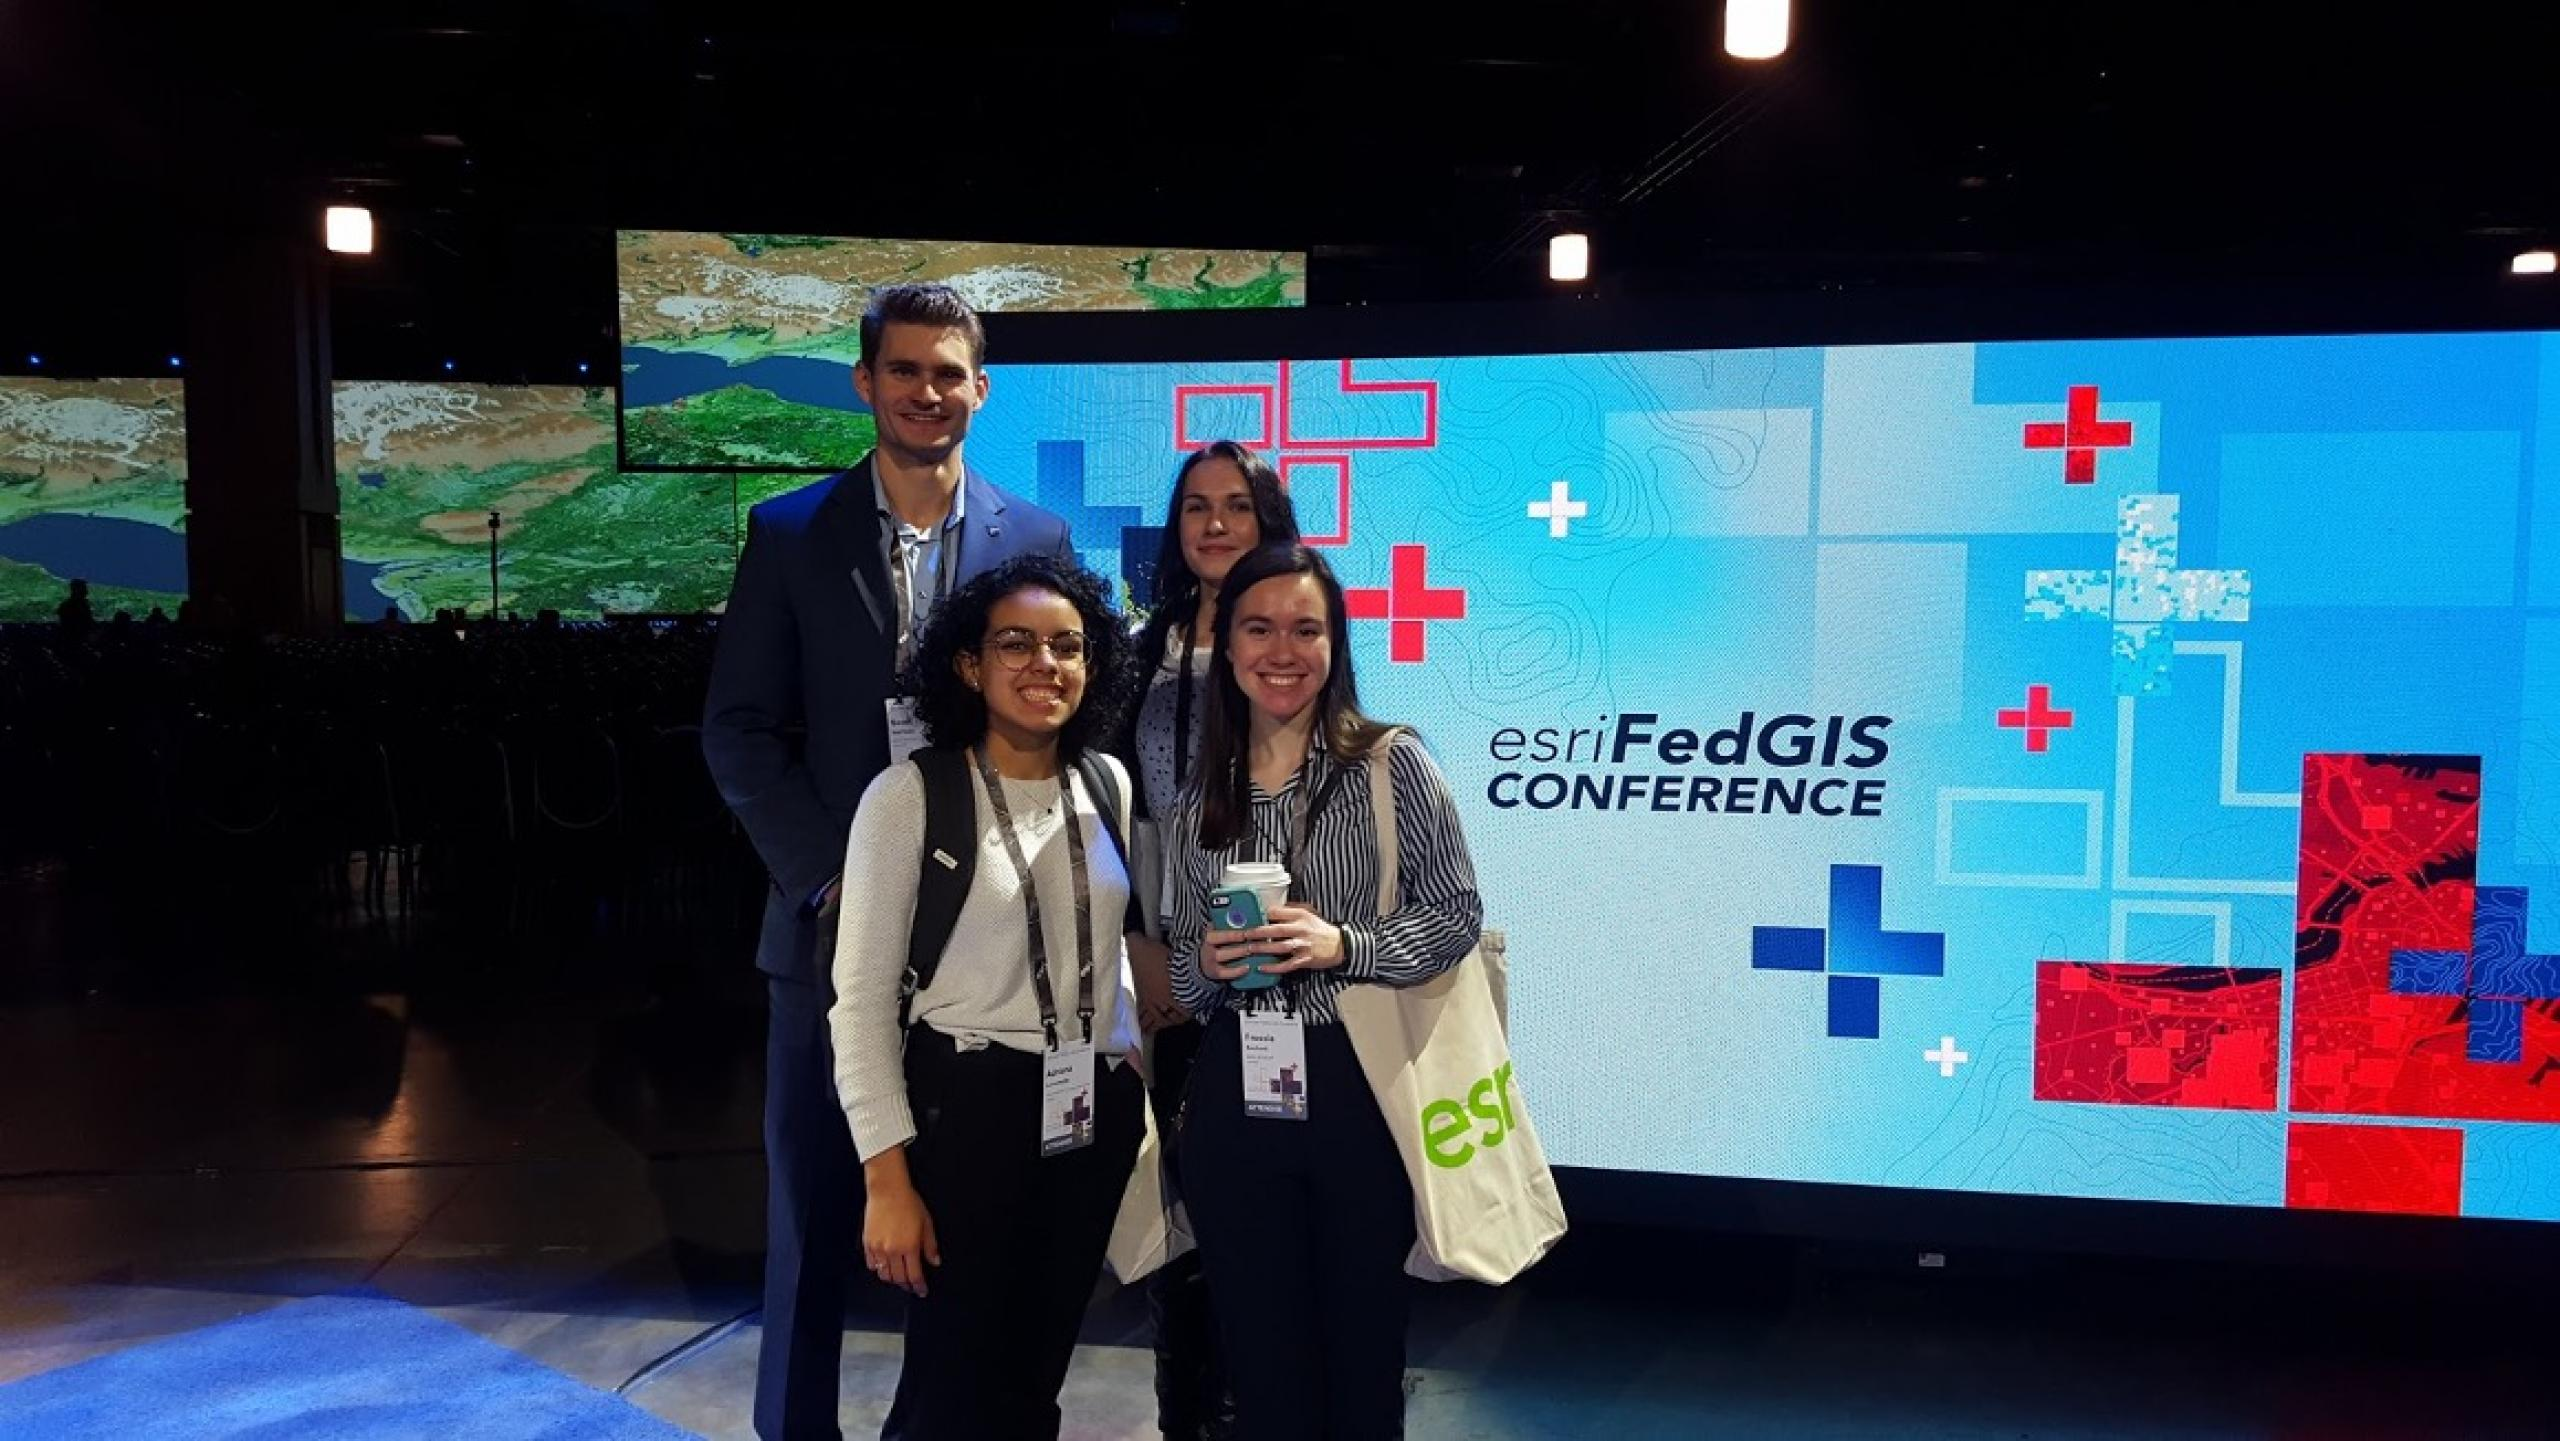 The Capacity Building Program attended the Esri Federal GIS conference to learn more about applications and new technology. This photo shows participants from the DEVELOP Langley – Virginia location on February 12, 2020. Credit: NASA